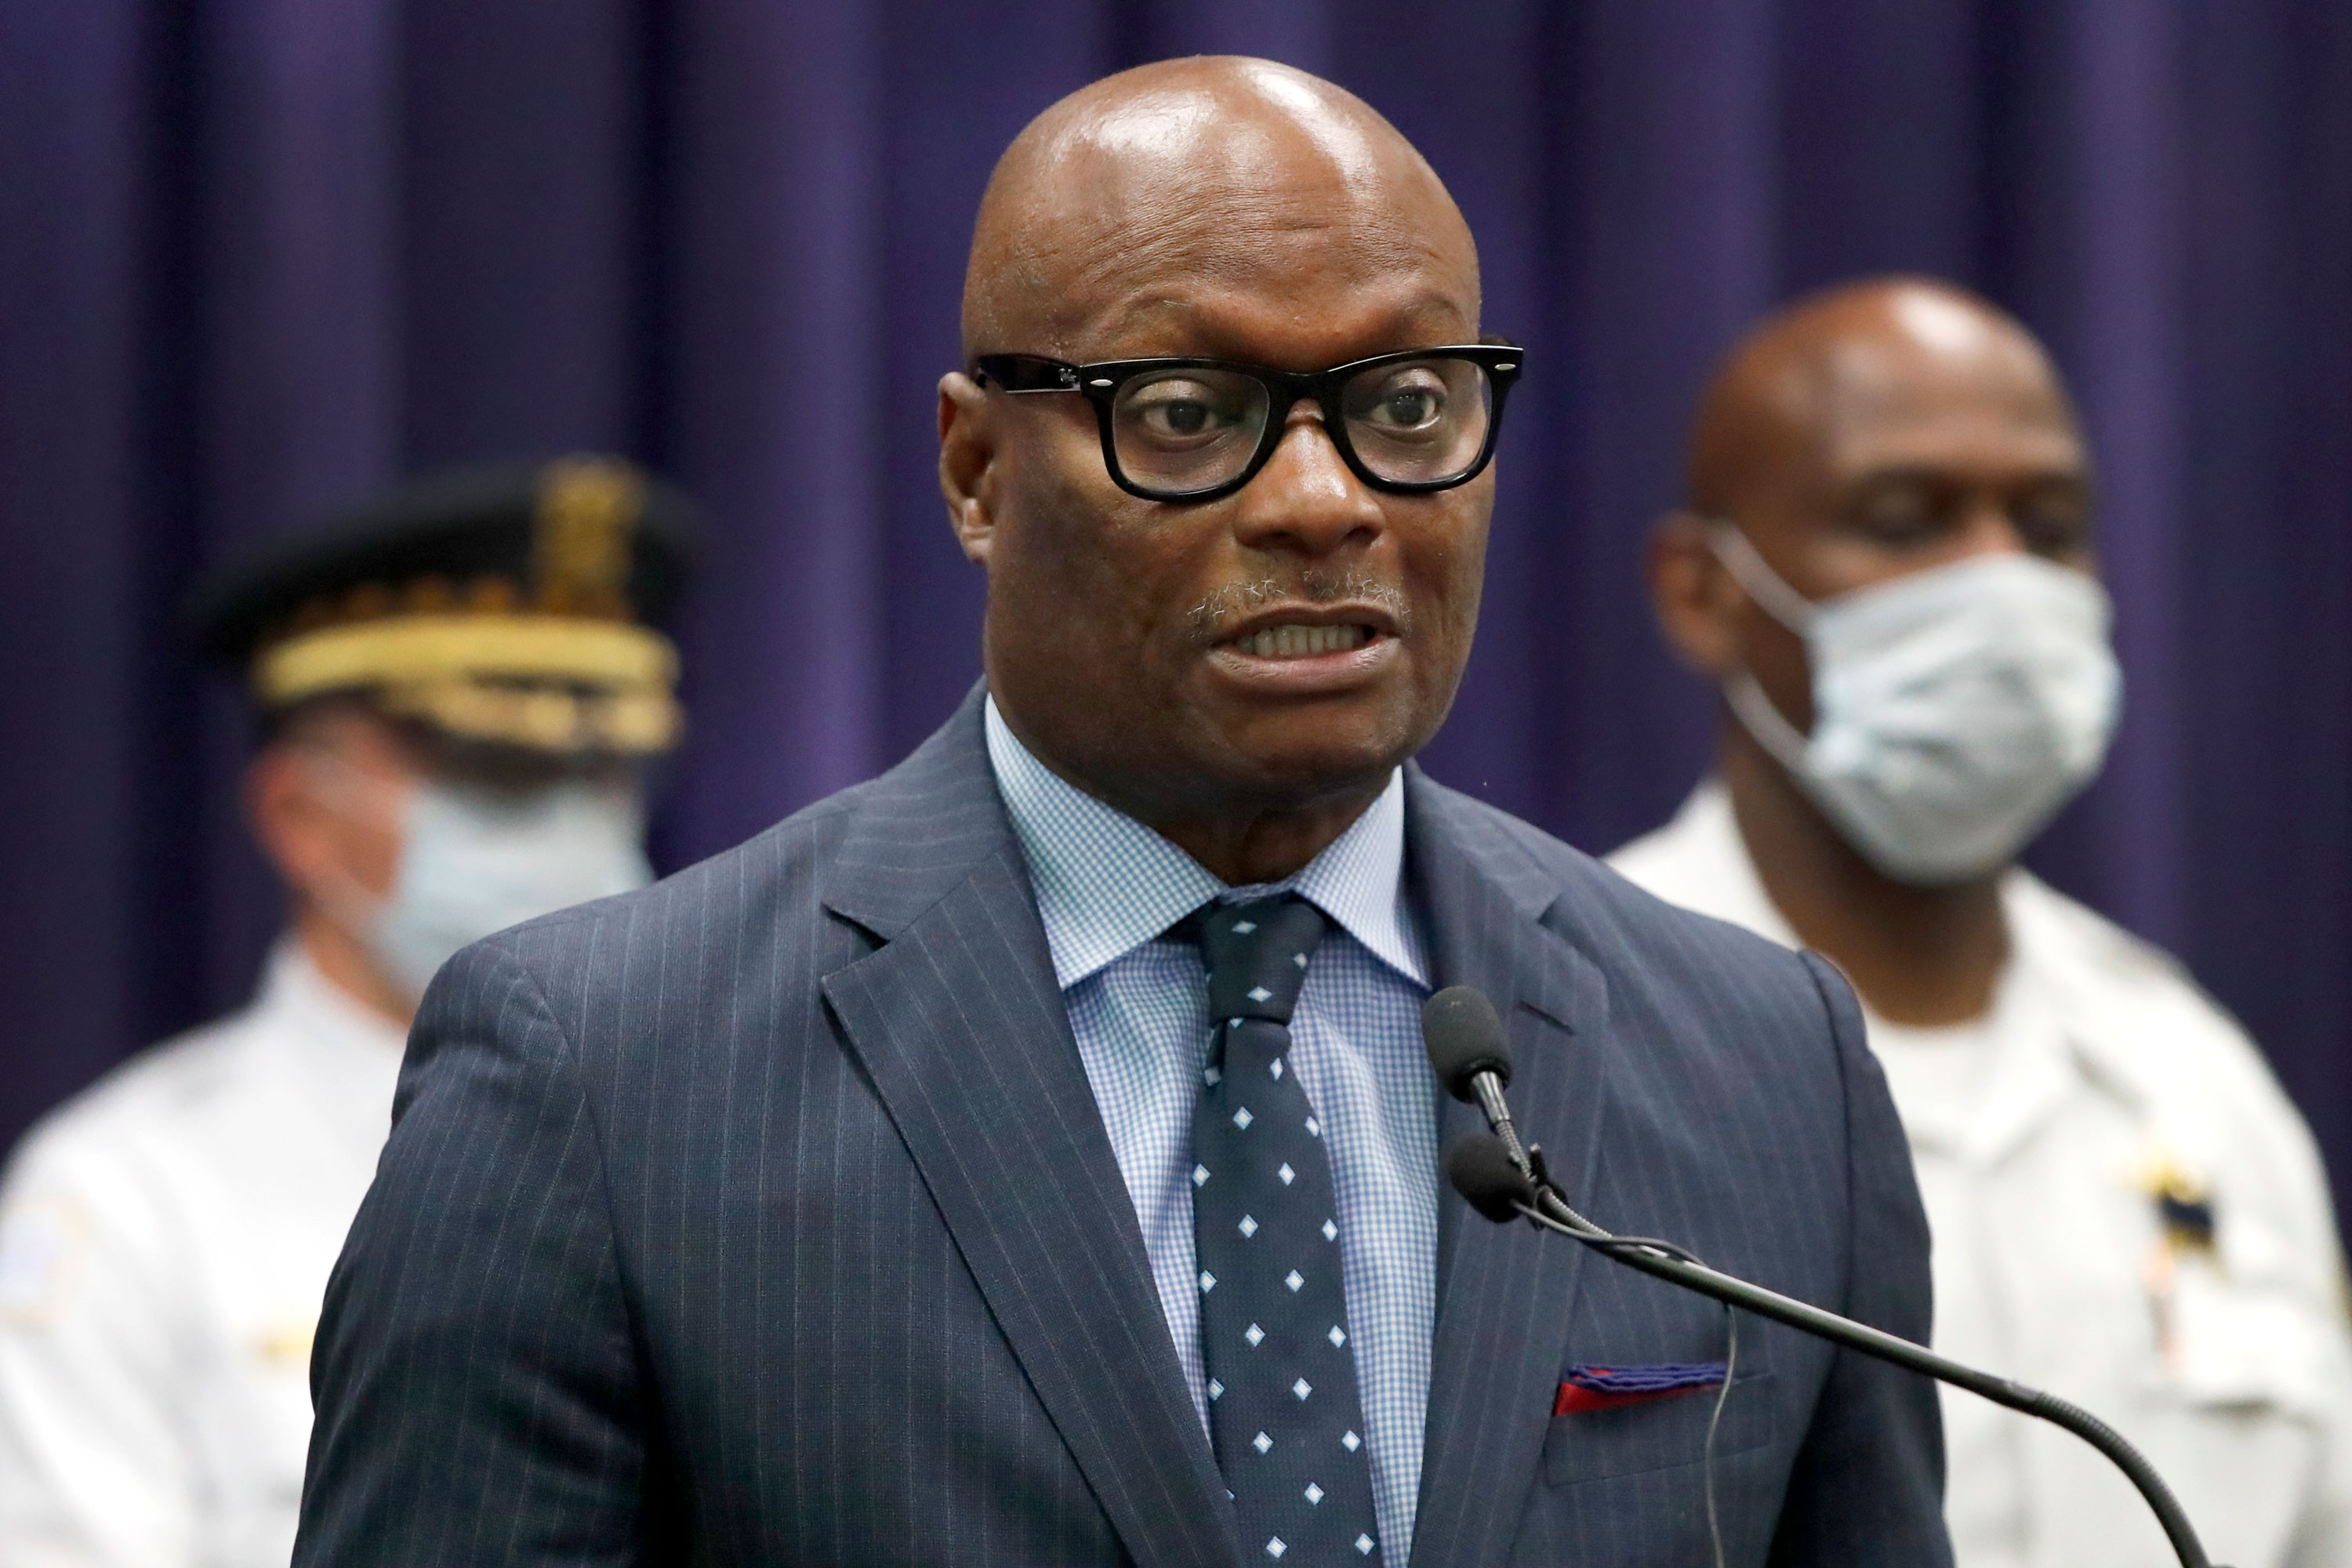 Chicago Police Superintendent David Brown speaks during a news conference on May 26 in Chicago.